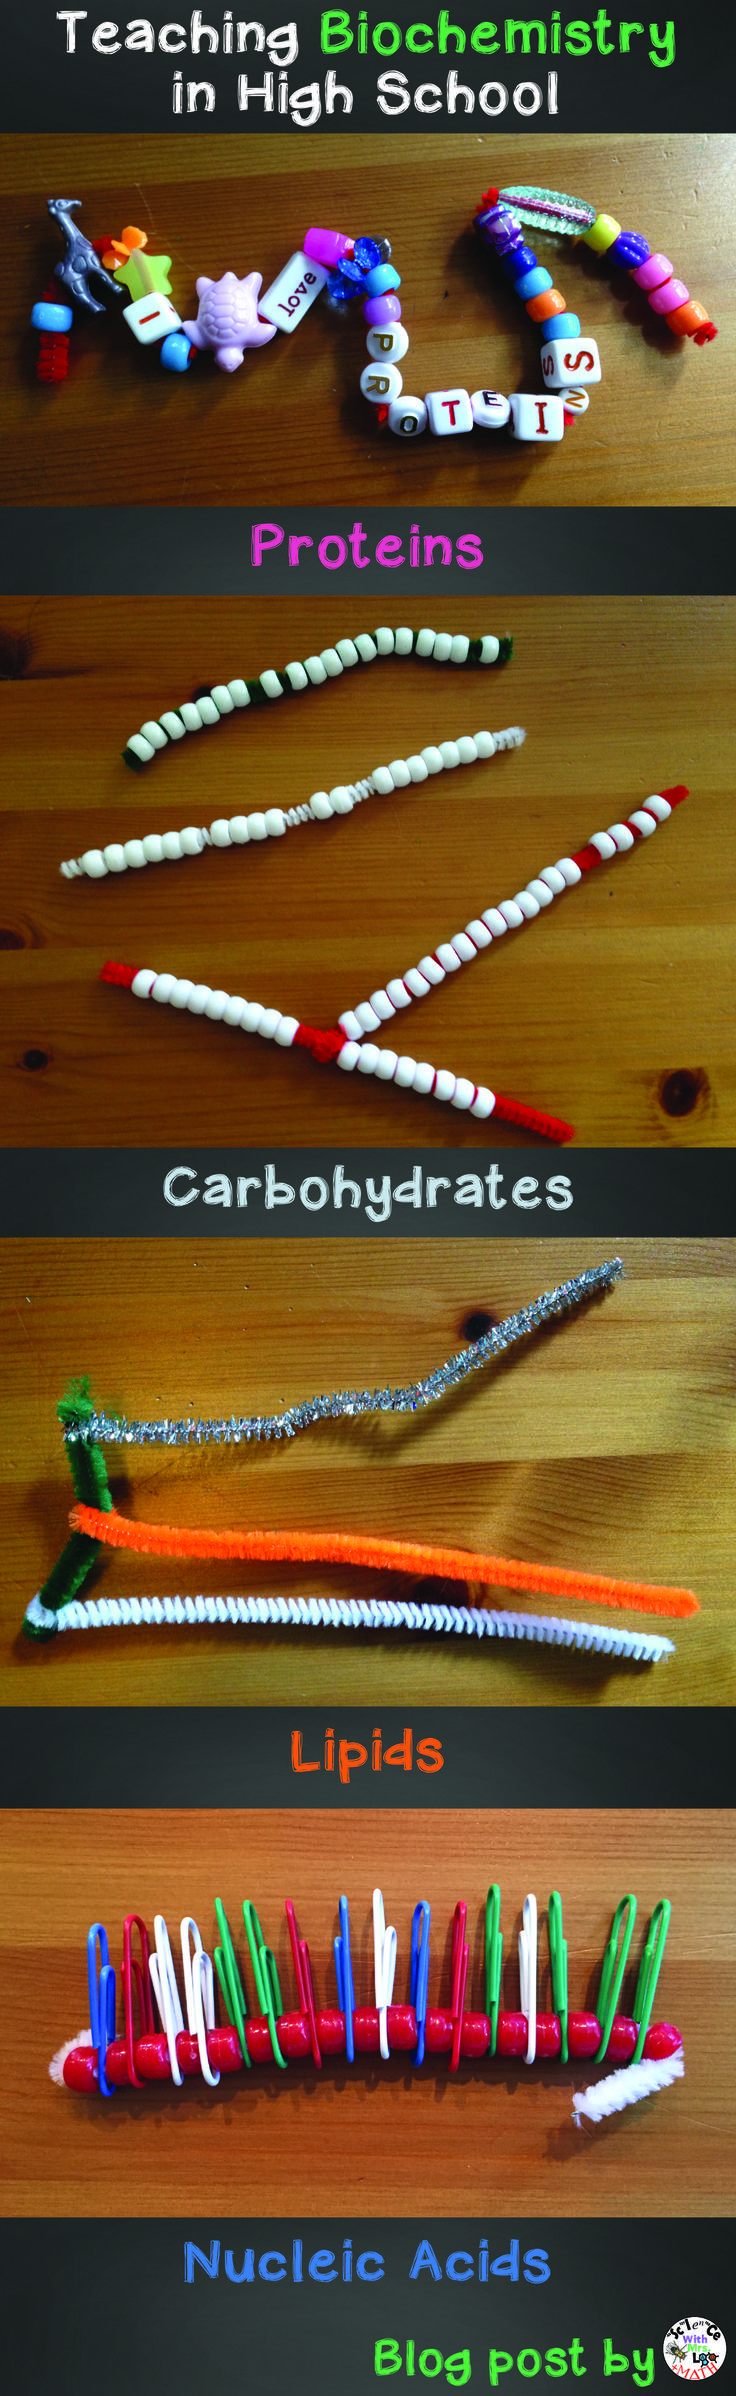 Molecular models science teachers can use to show proteins, nucleic acids, carbohydrates, and lipids.  Blog post by Bethany Lau at Science and Math with Mrs. Lau